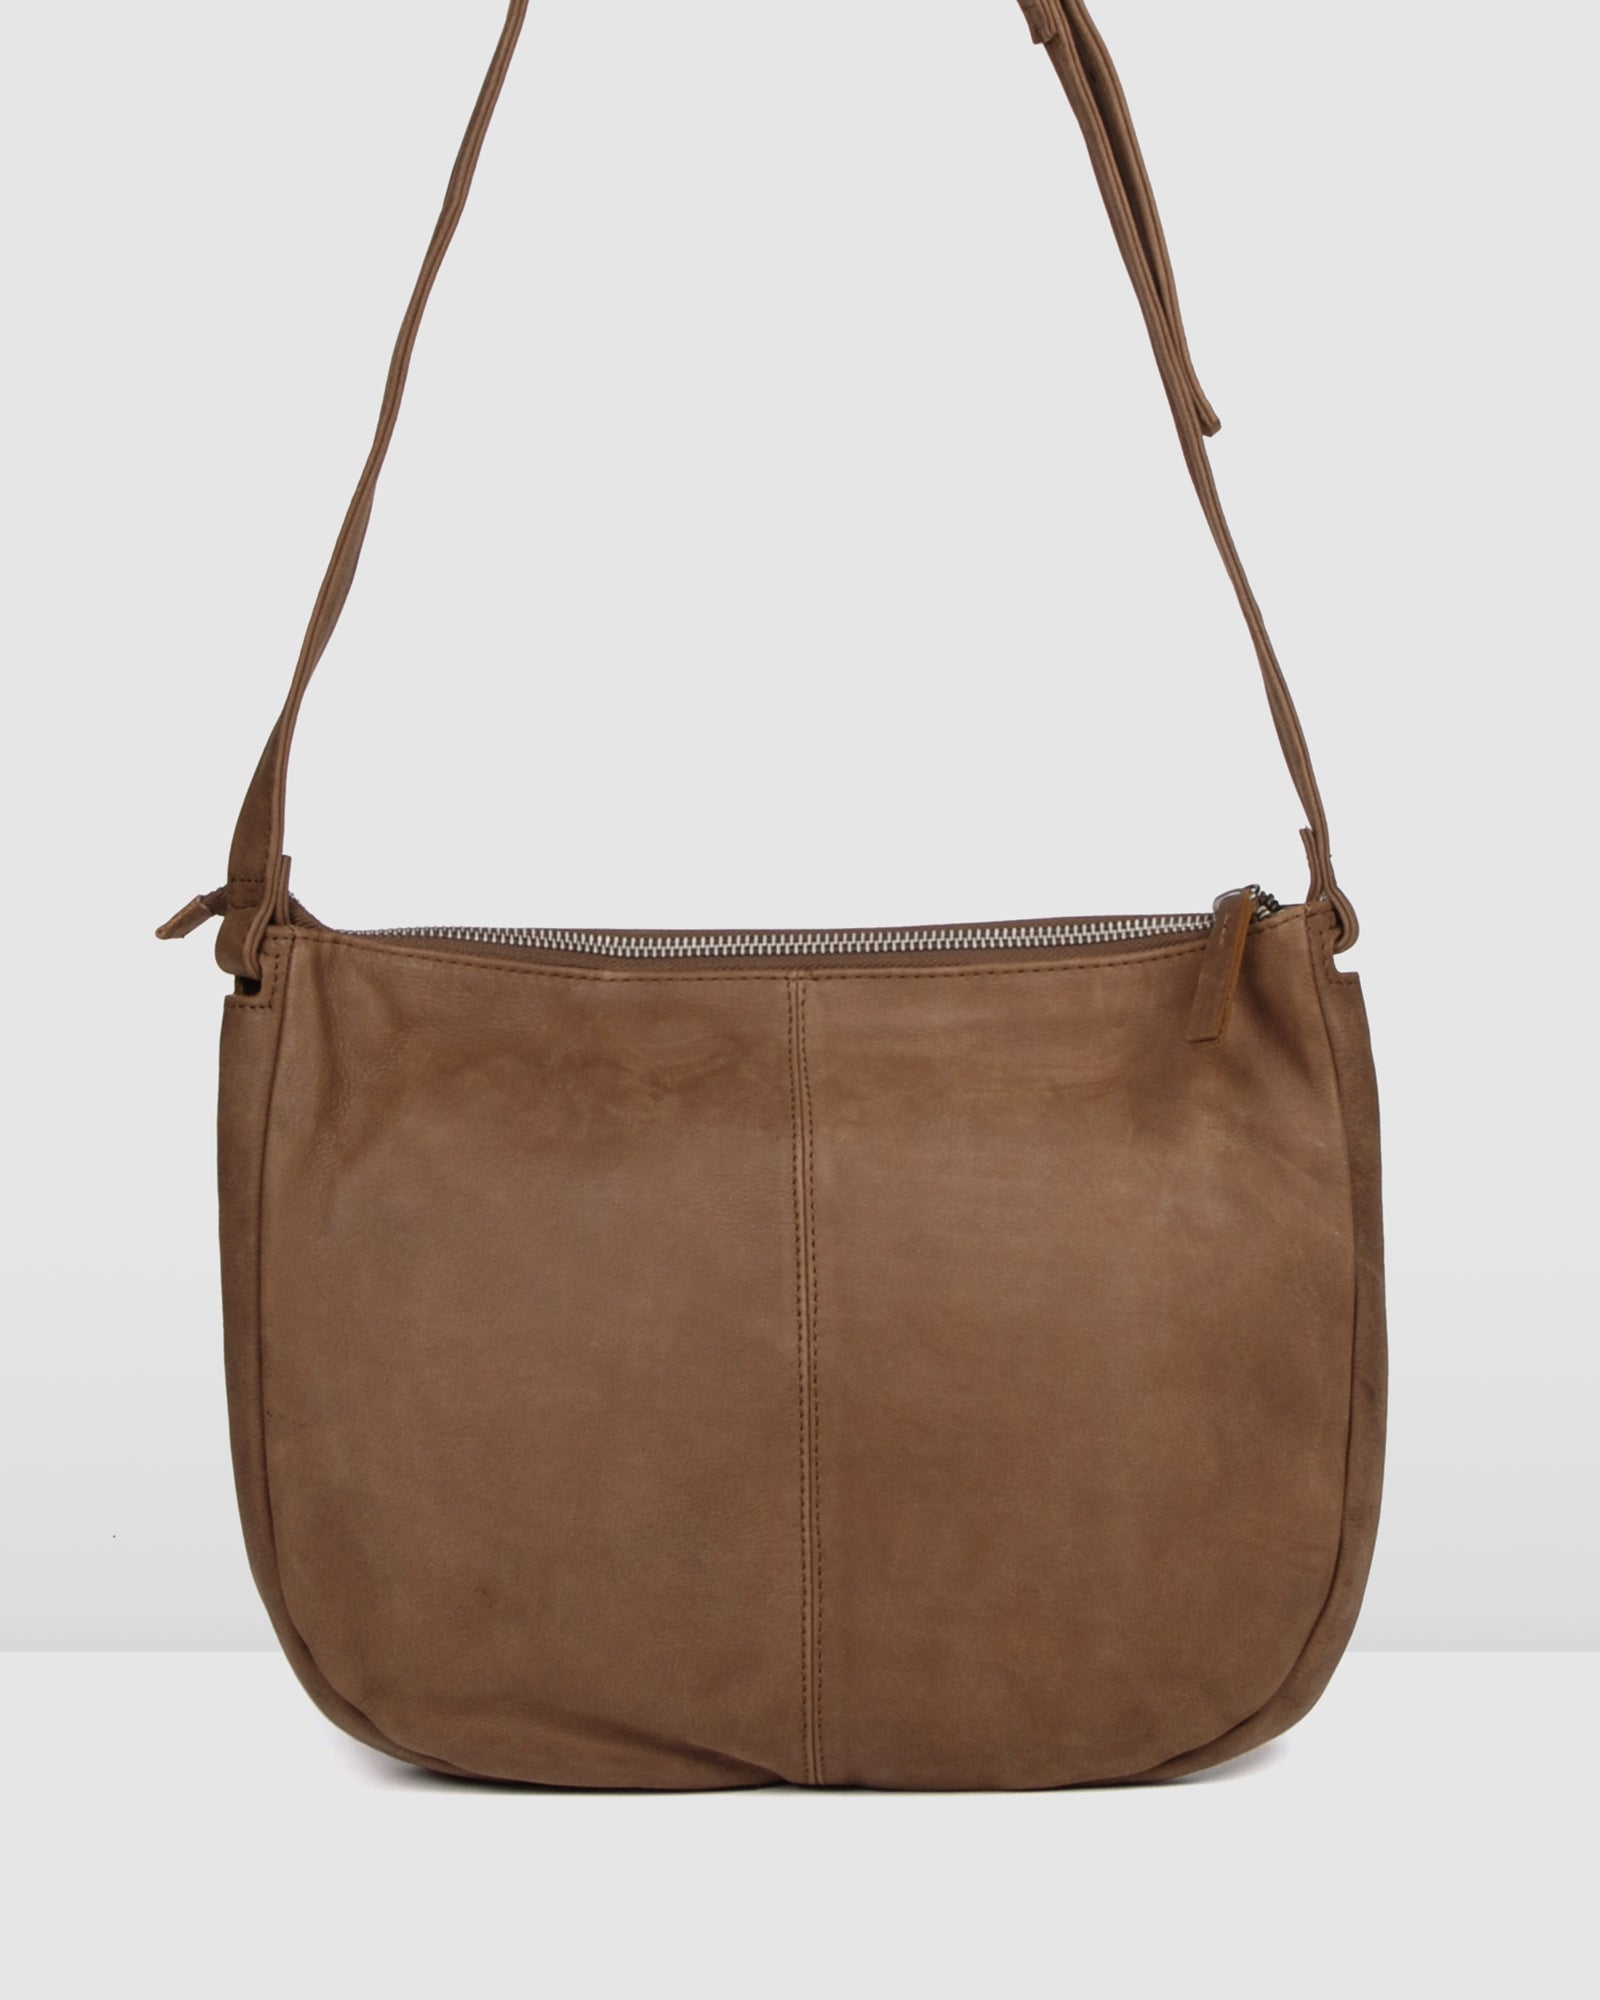 BIBA ARKANSAS CROSS BODY BAG TAN LEATHER